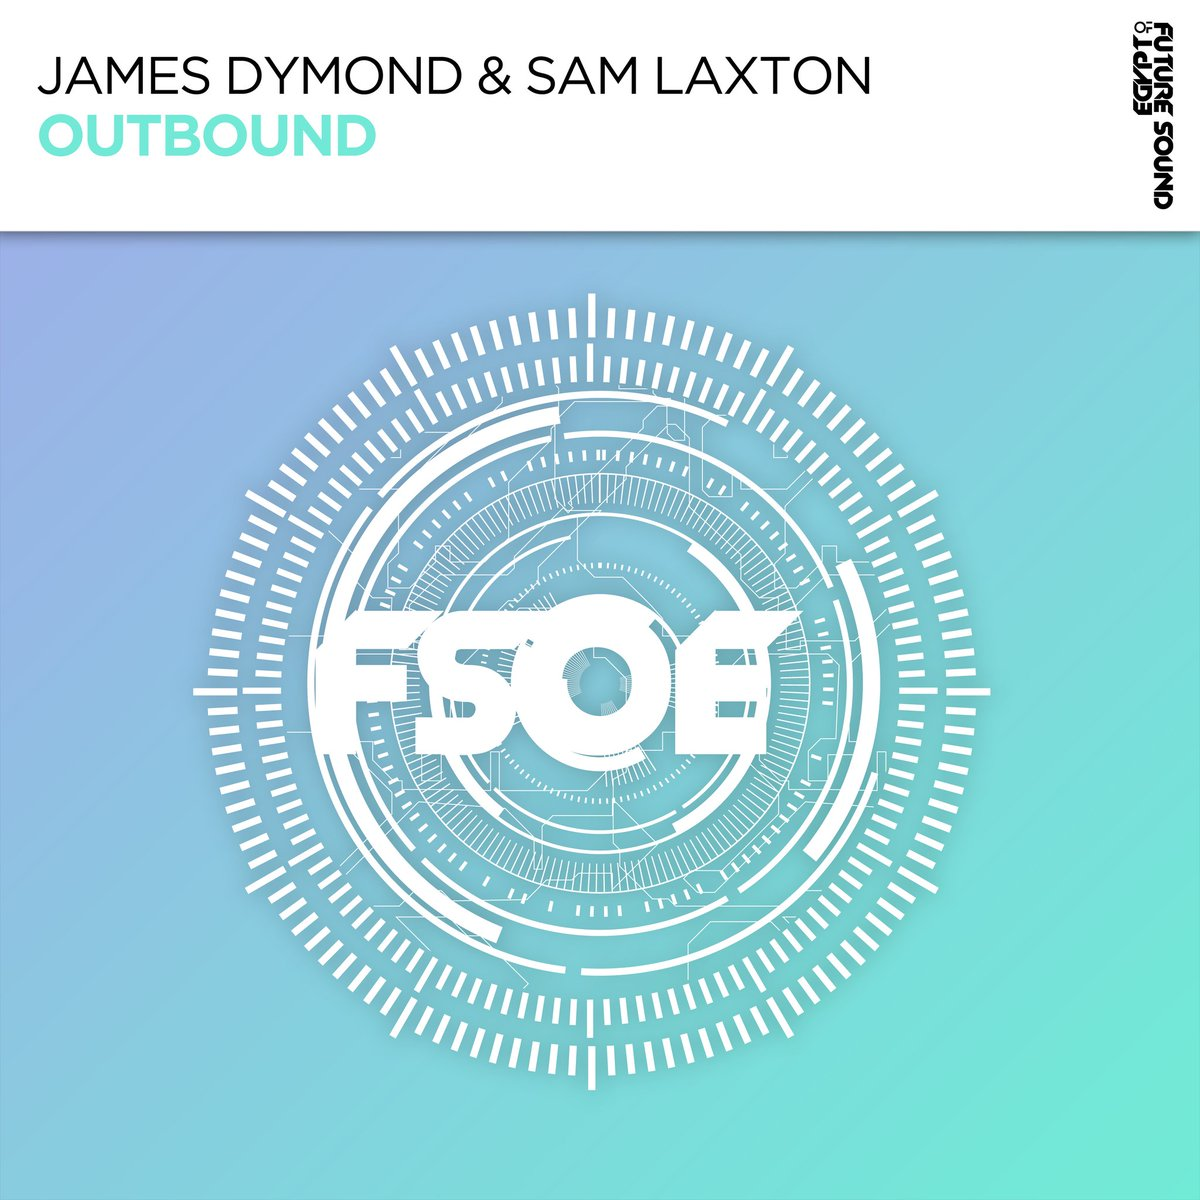 Releasing this Friday on @FsoeRecordings, my collab with @James_Dymond!  Pre-order: https://t.co/LTWQusQV60 https://t.co/7qRsesX77v